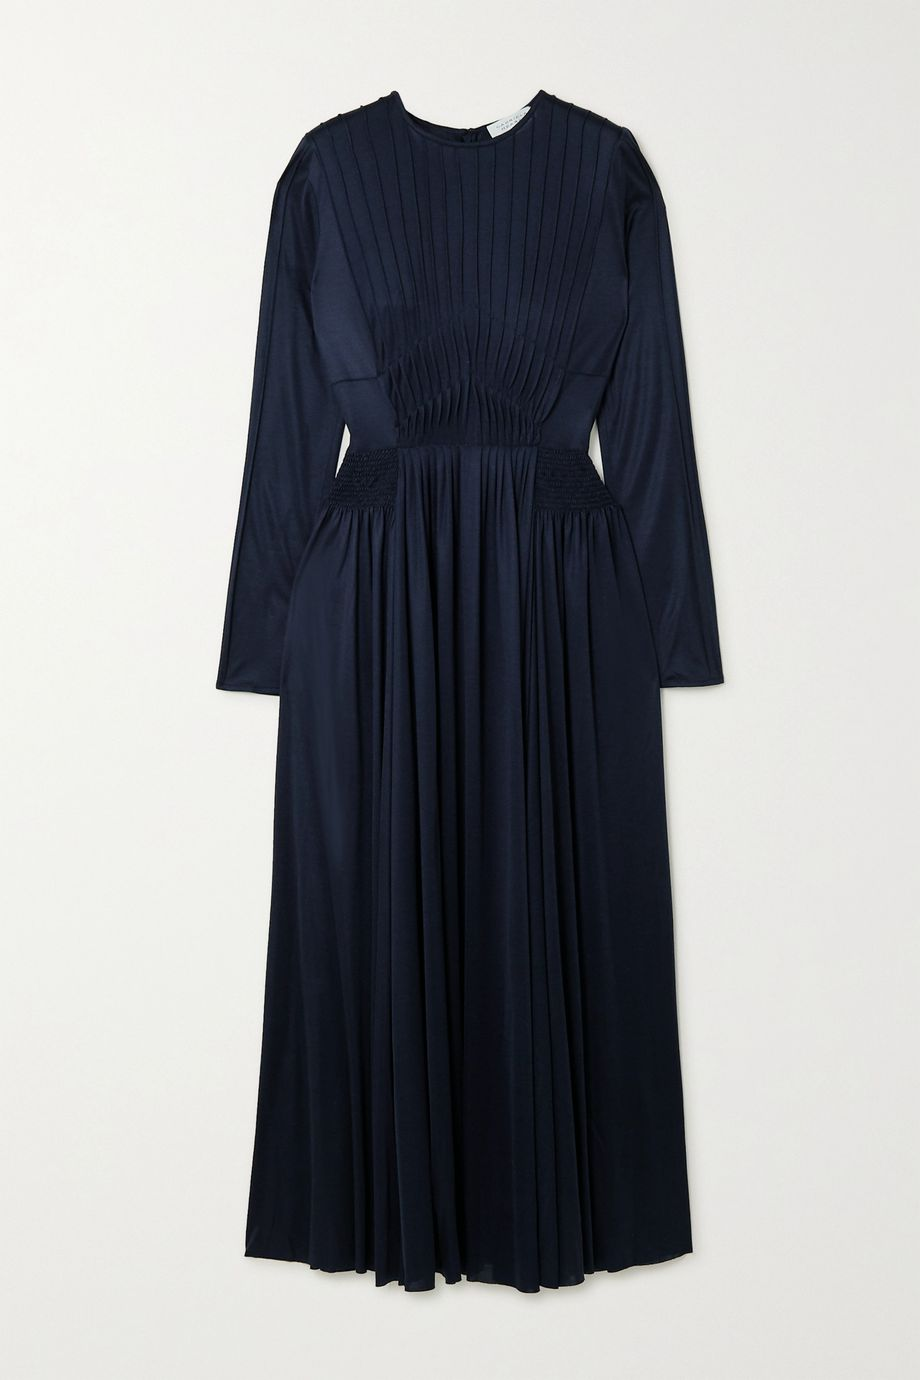 Gabriela Hearst Hermina pleated silk-jersey dress